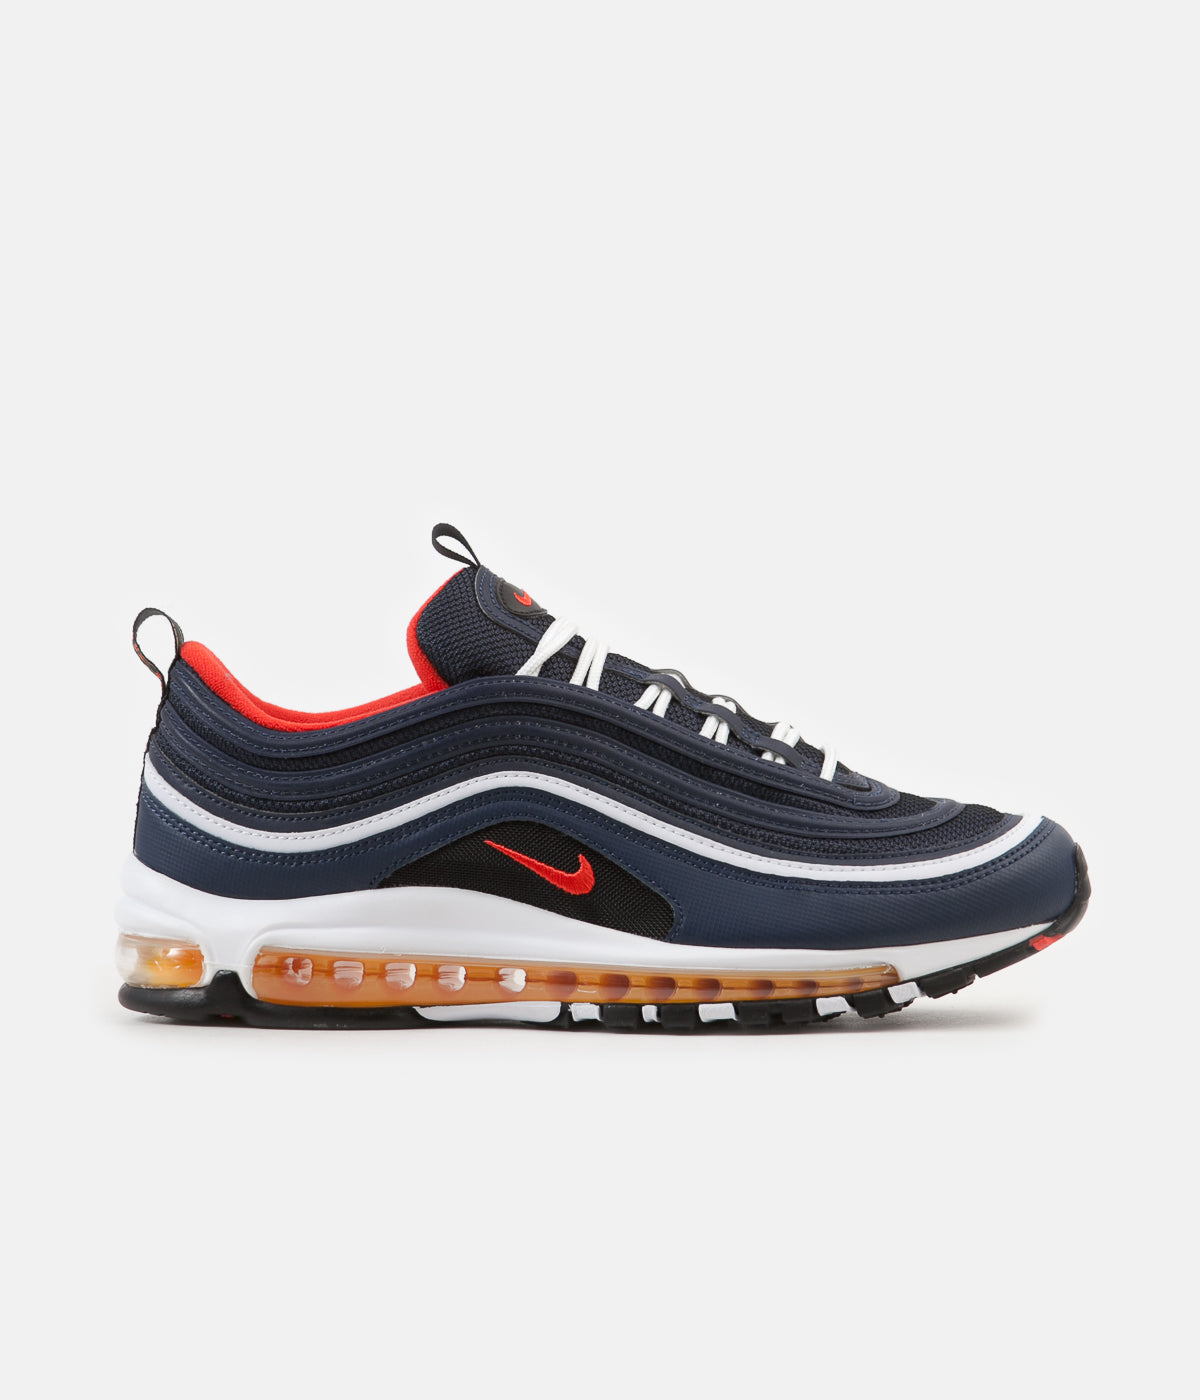 23d30fcf2d5a82 ... Nike Air Max 97 Shoes - Midnight Navy   Habanero Red - Black - White ...